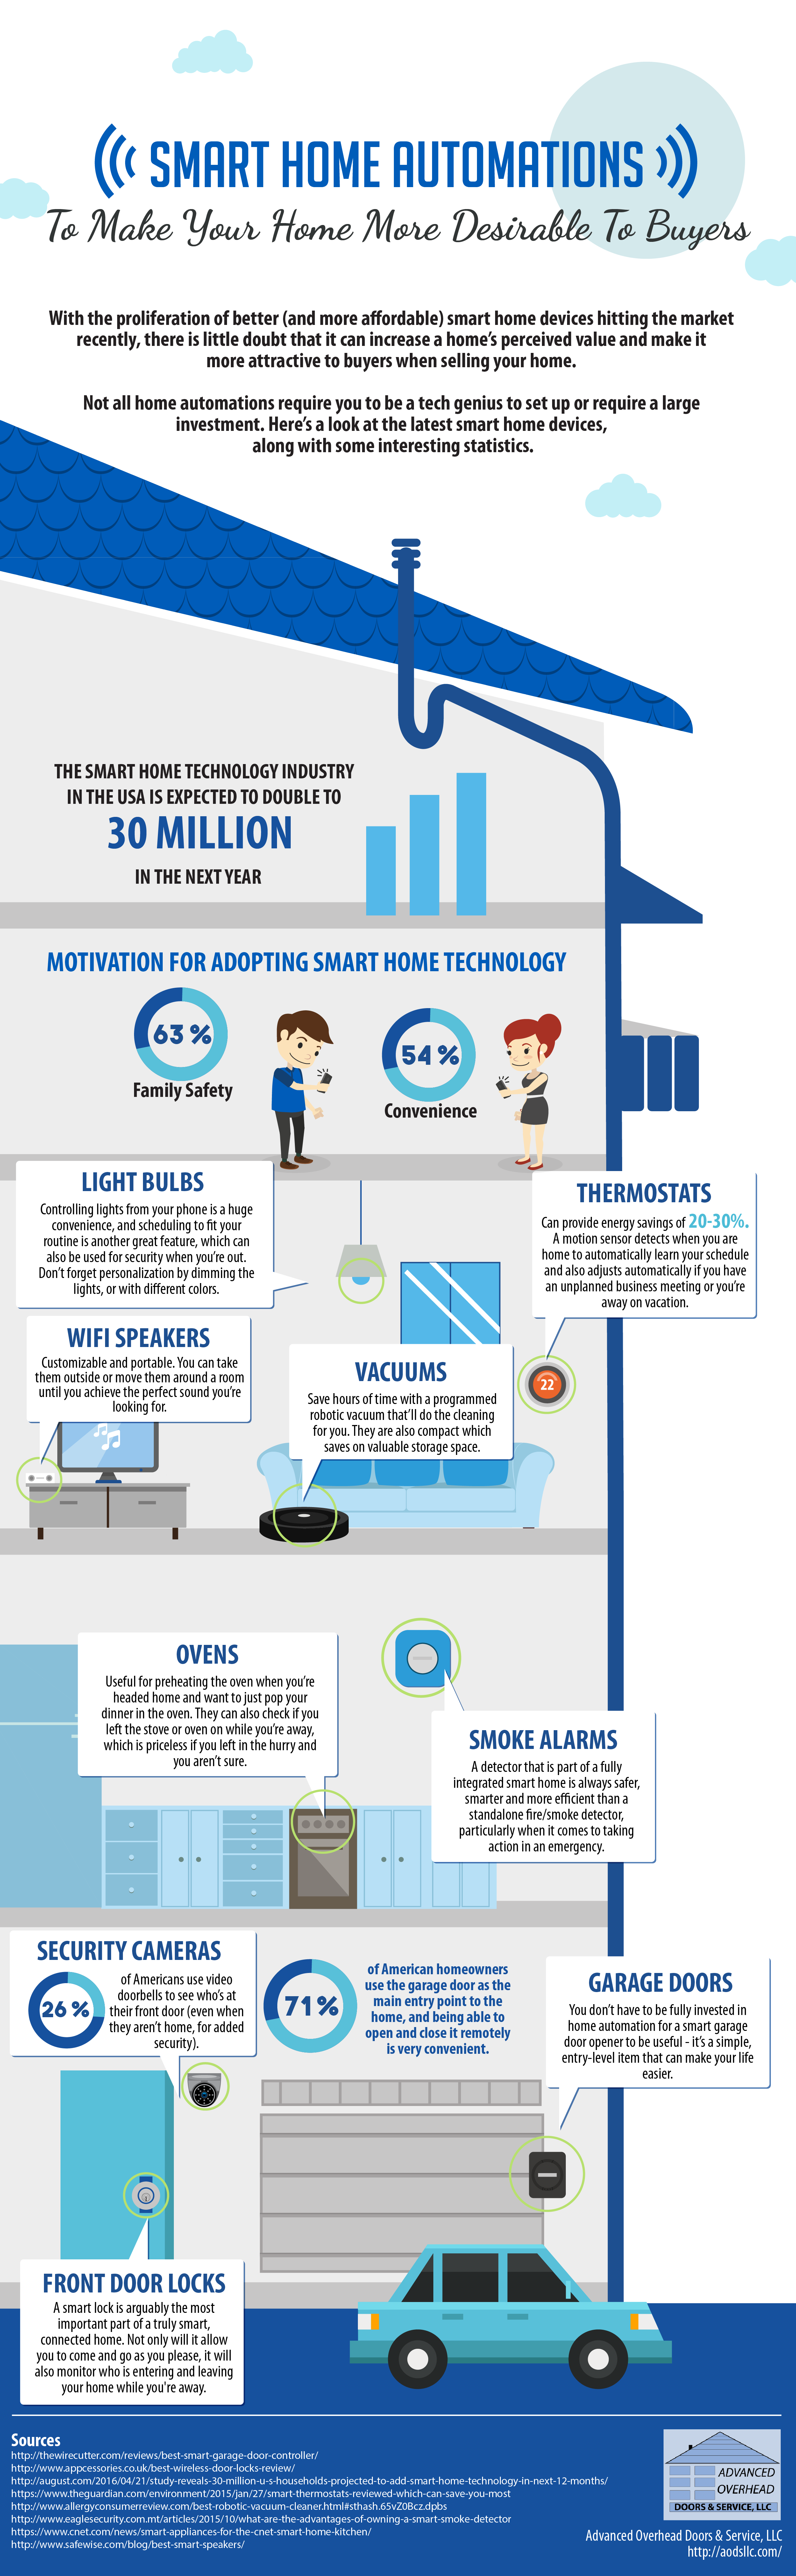 Smart Home Automations that Boosts Your Home Values.png